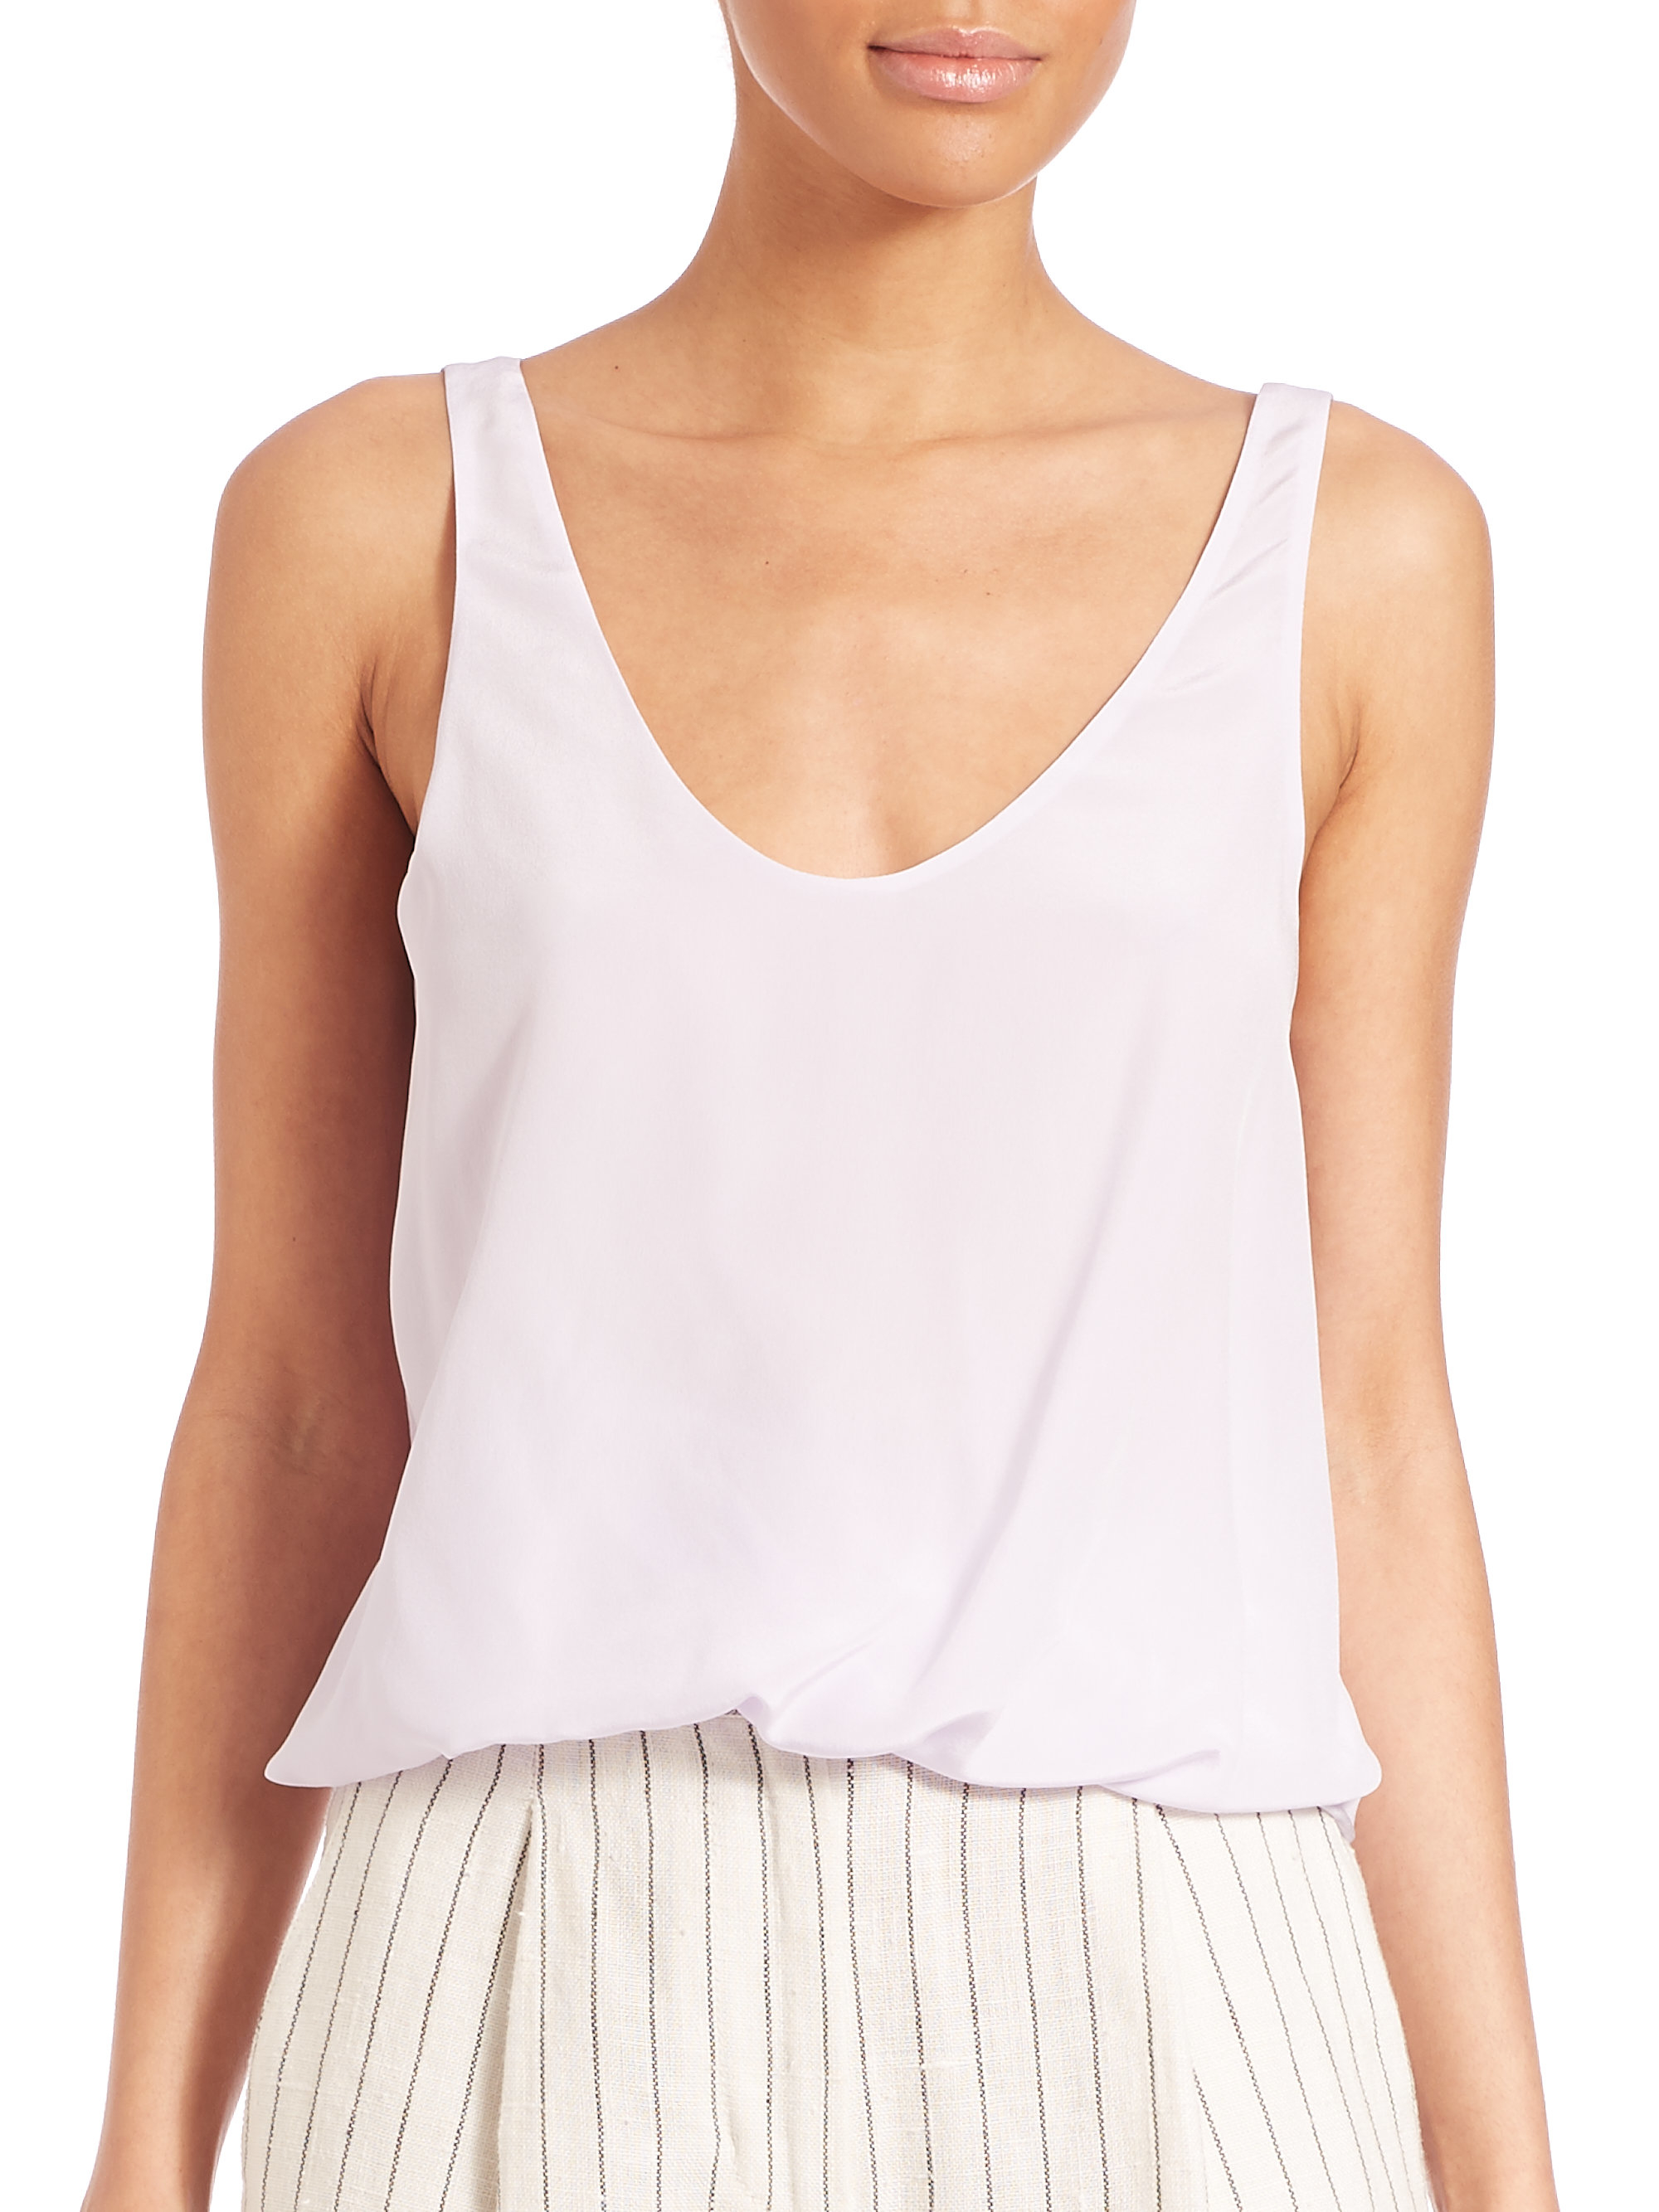 3.1 Phillip Lim Woman Asymmetric Paneled Silk-satin And Crepe Top Fuchsia Size 4 3.1 Phillip Lim 2018 Newest Online Free Shipping Supply UqBjx